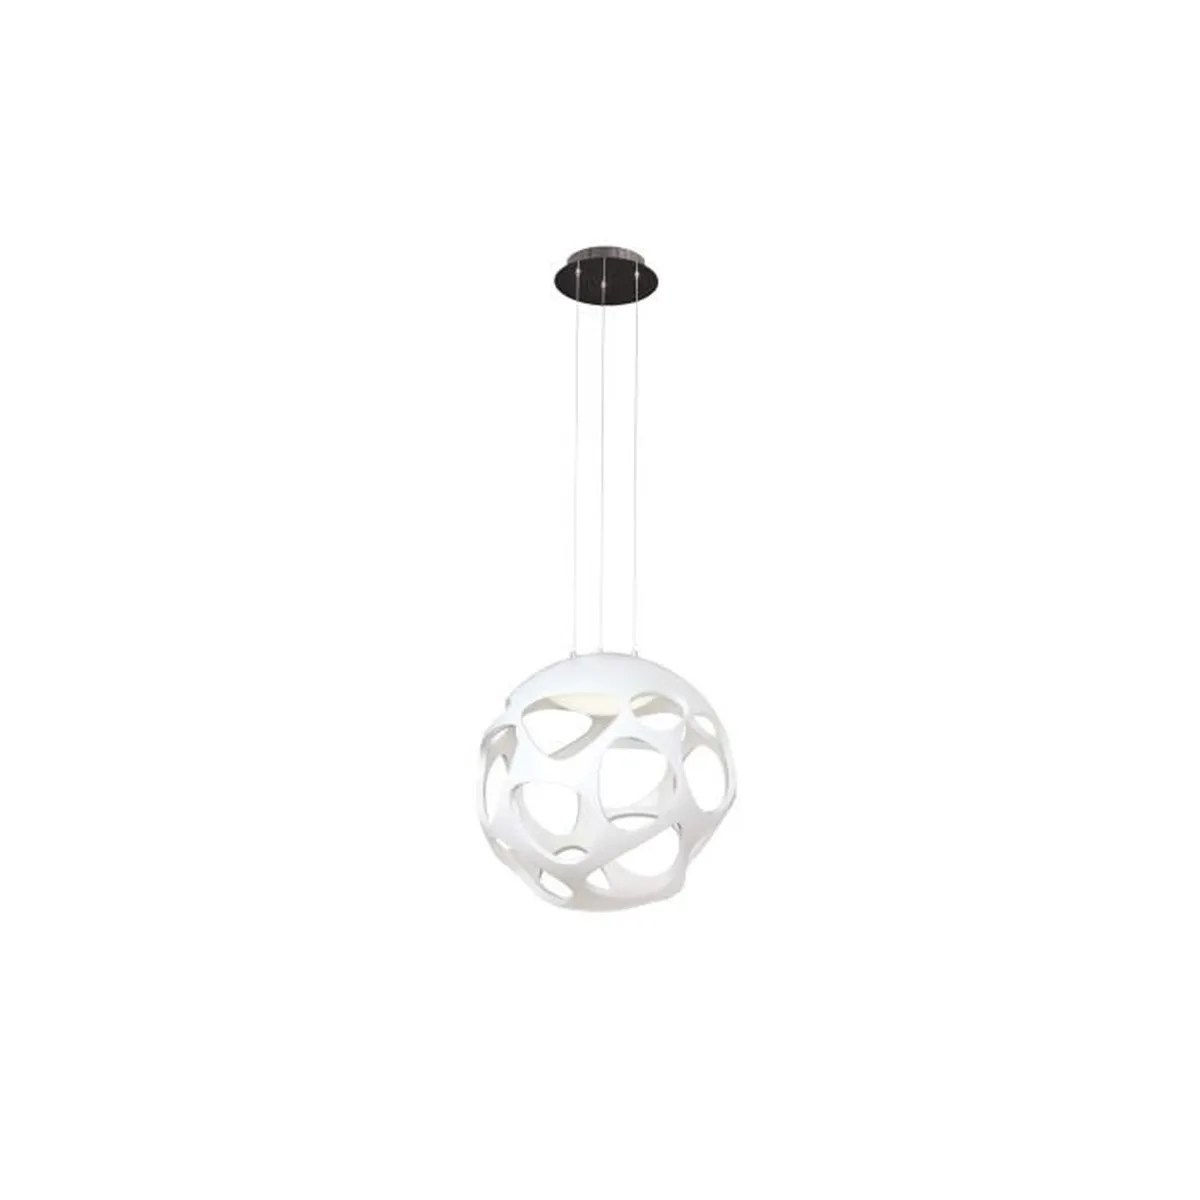 Suspension Ronde Grande Suspension Ronde Design Organica Achat Vente Grande